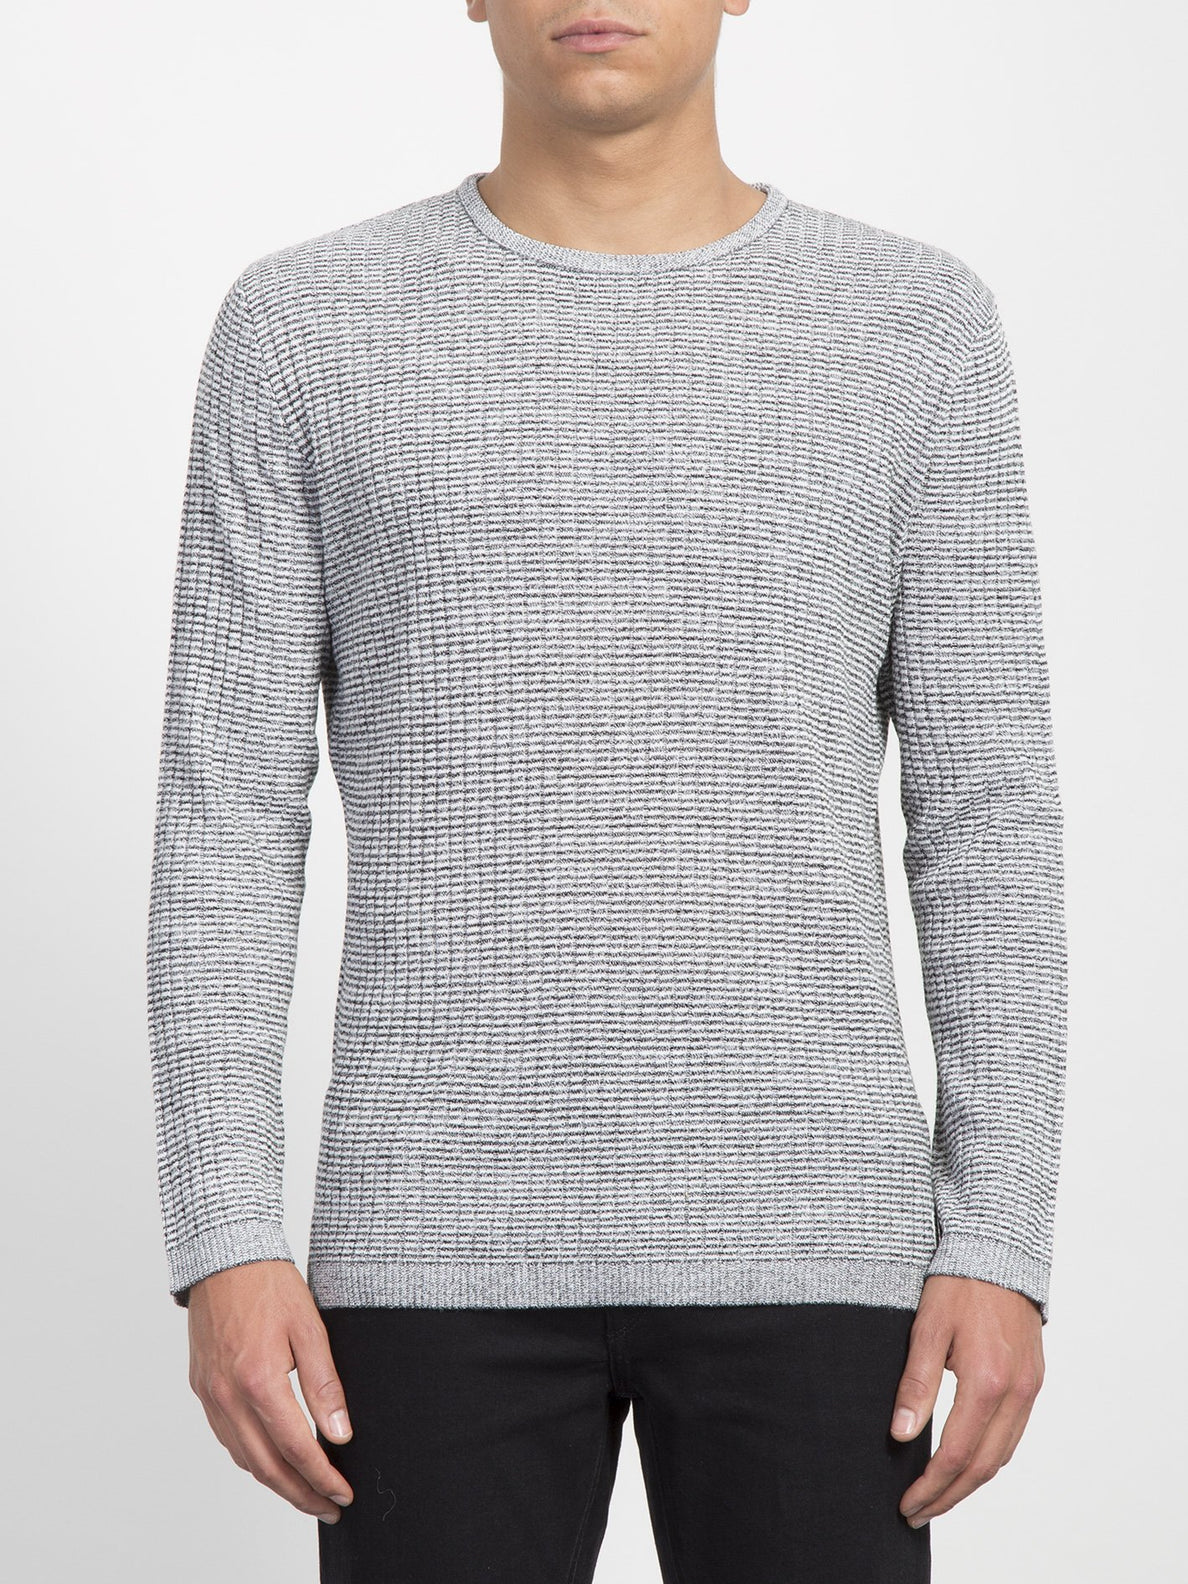 Jaafan Sweater  - Black